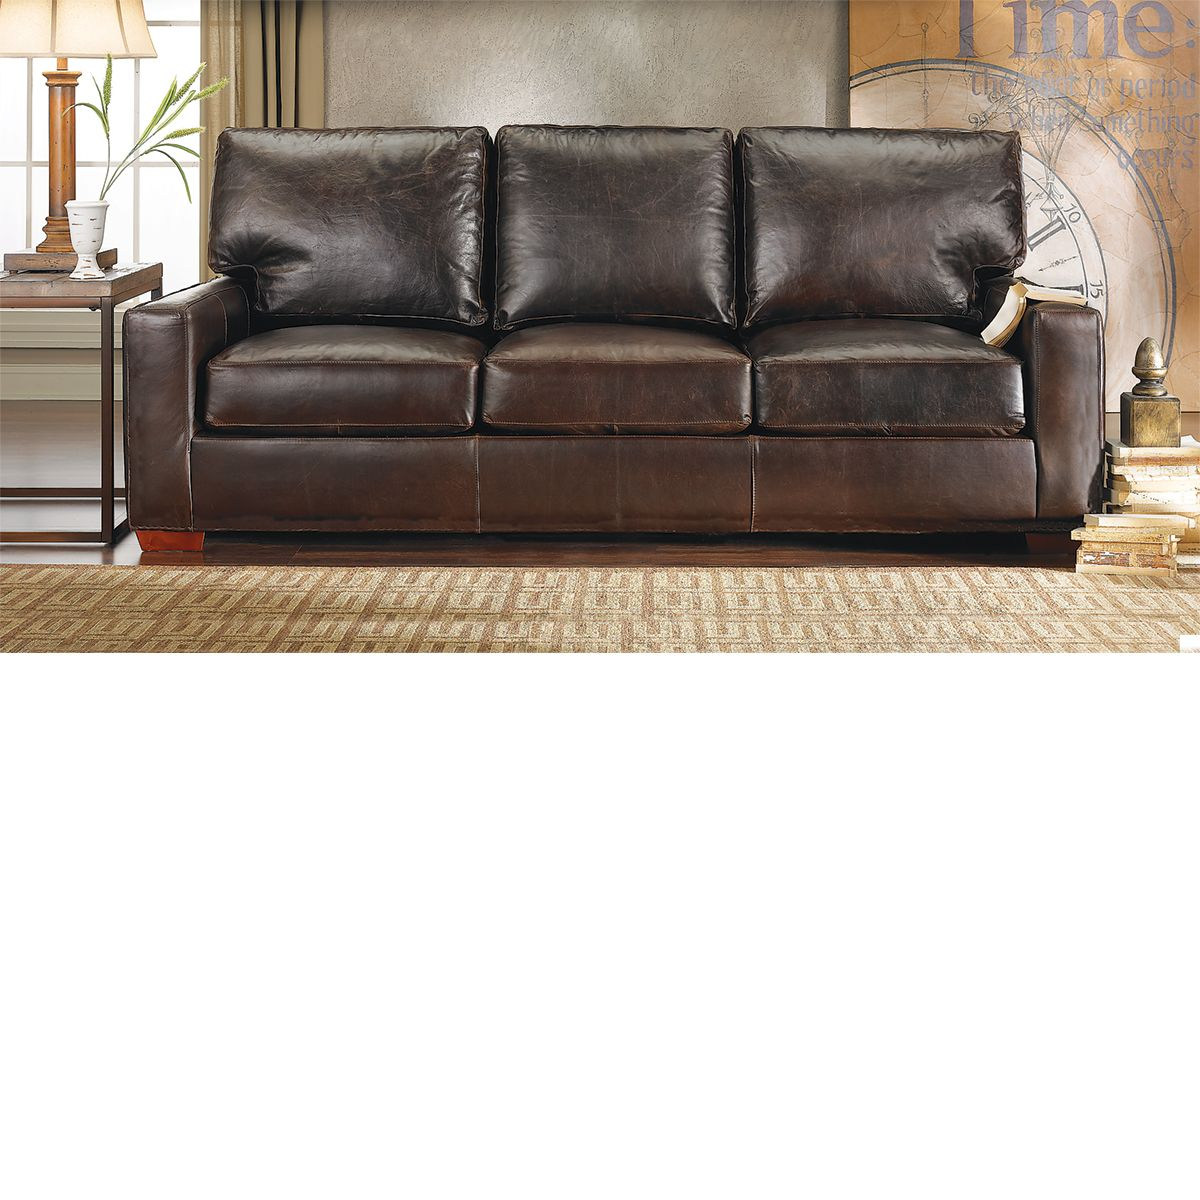 Brompton Leather Sofa The Dump Furniture Outlet Luxe Furniture